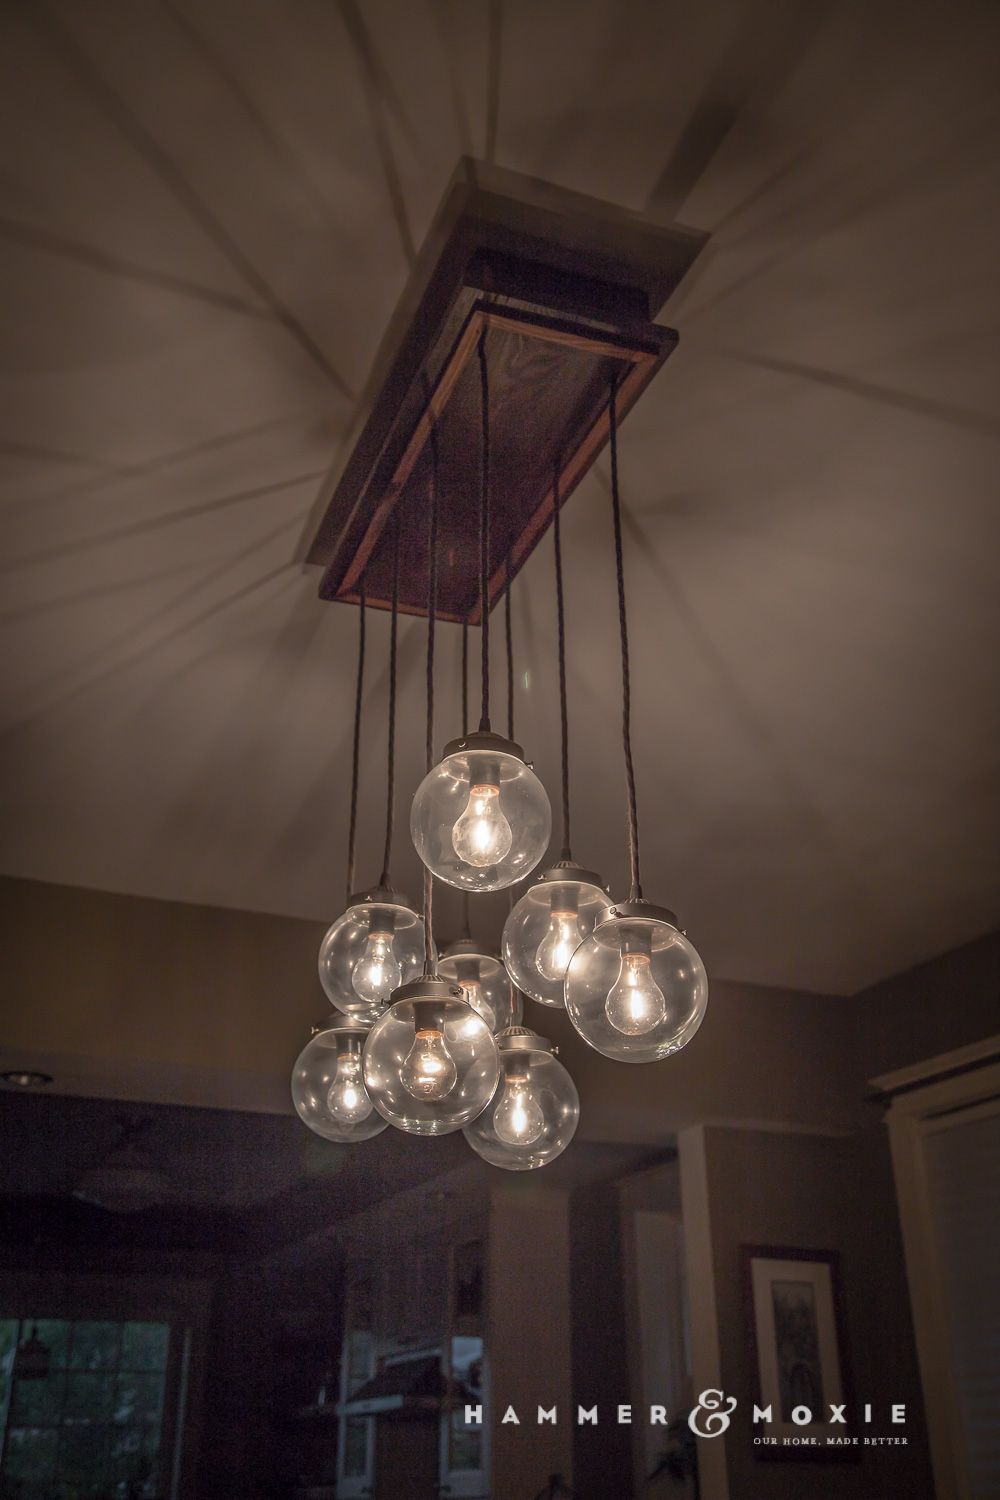 homemade chandelier with irregularly hung globes, cotton-covered wiring,  and a ceiling box made of reclaimed wood | hammer & moxie